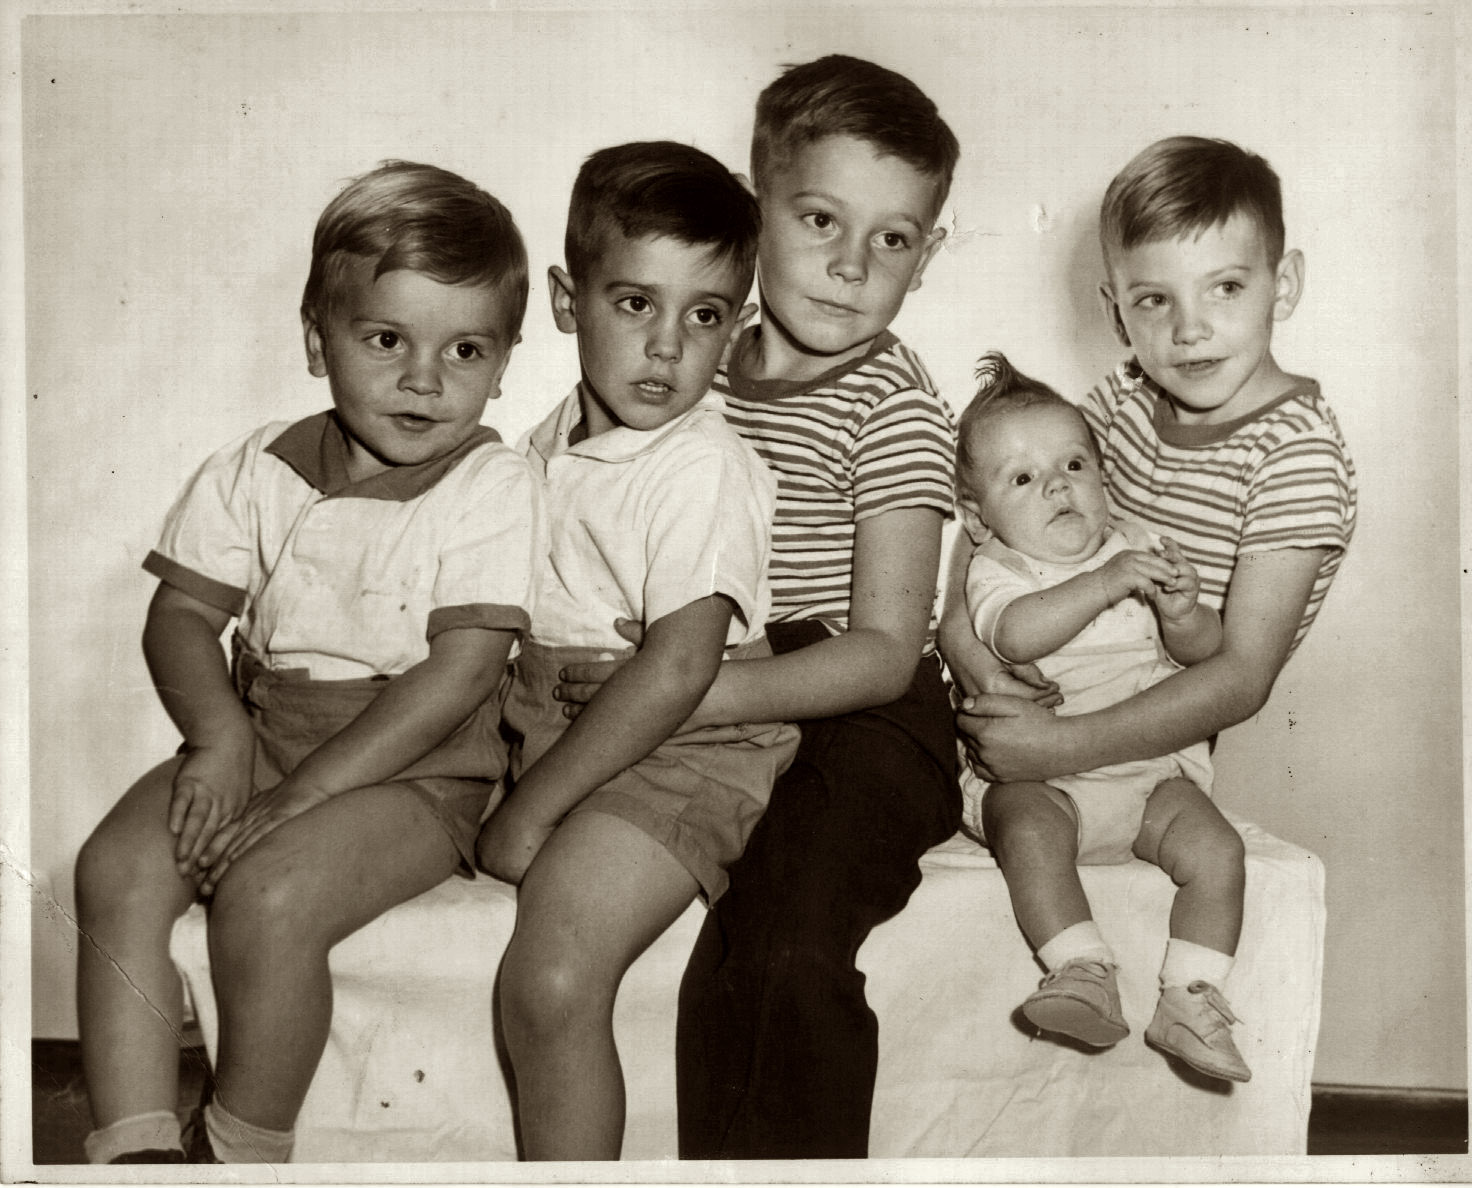 These are my brothers: Dick, Tommy, Kenny, Dale (the baby) and Larry Hedge.  Hall, New York, 1953. I came a few years later, the only girl.